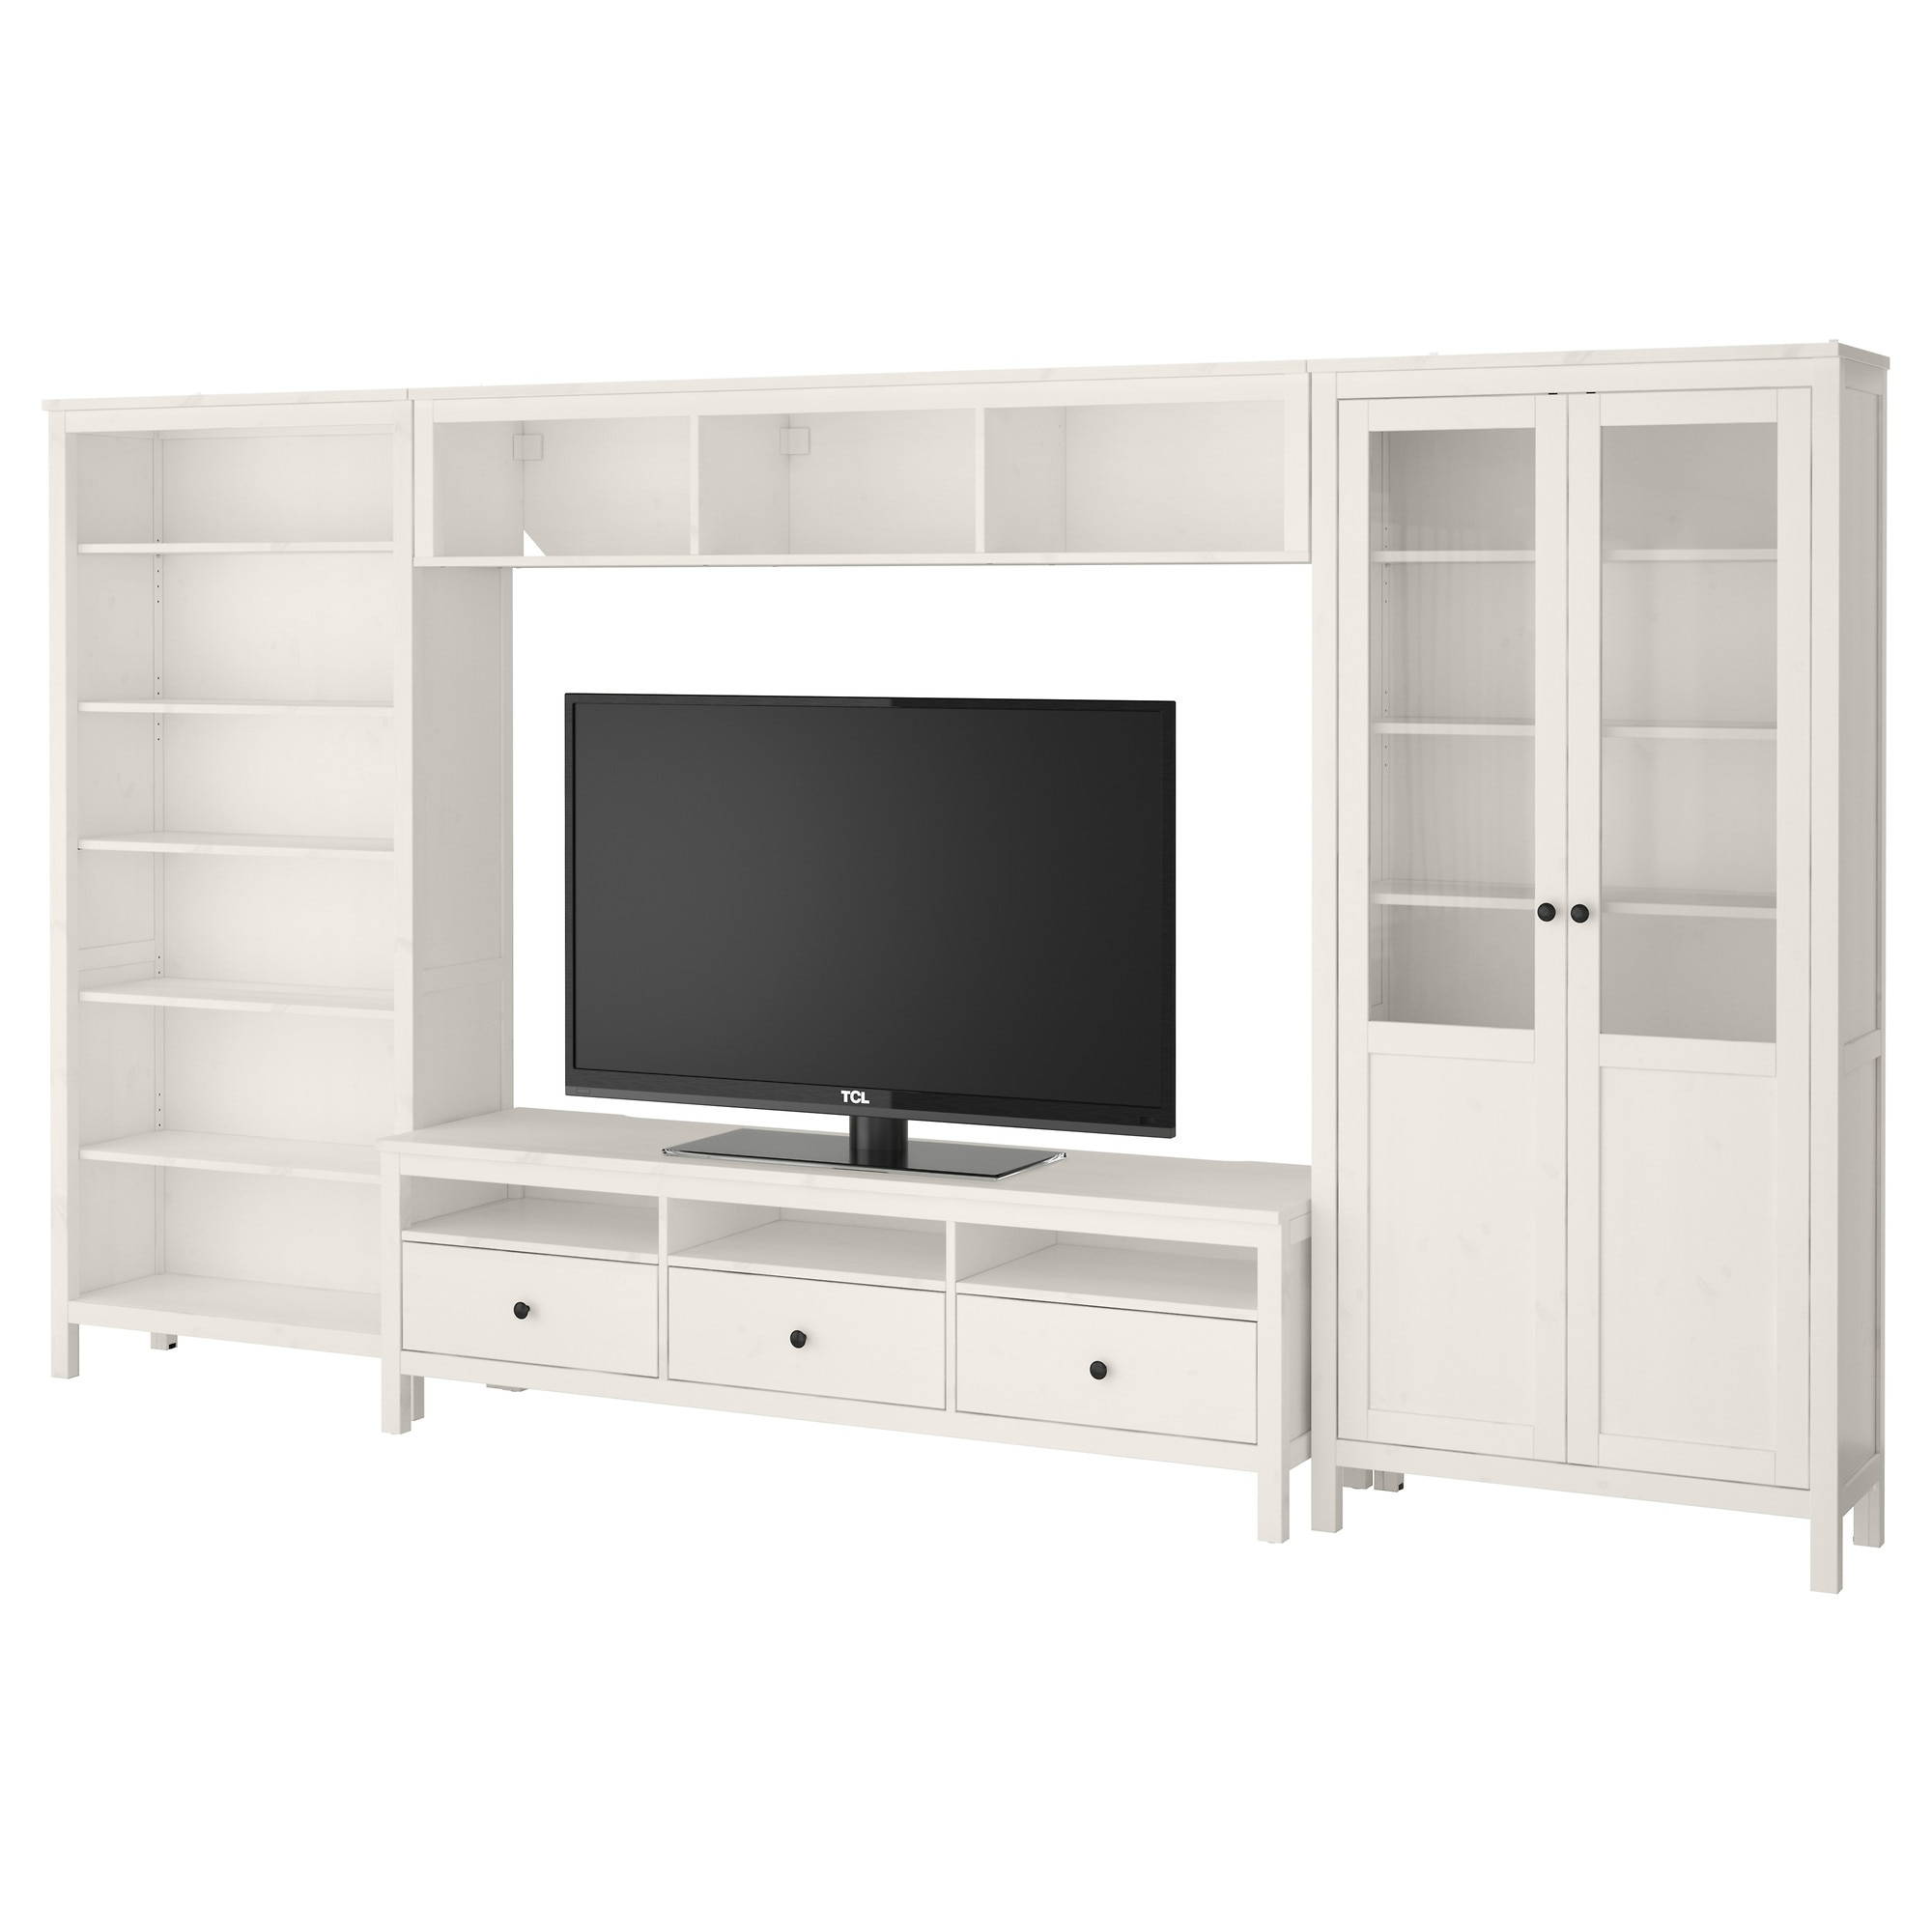 Screen tv stands ikea hemnes ikea hemnes tv storage combination white paint - Ensemble mural tv ikea ...